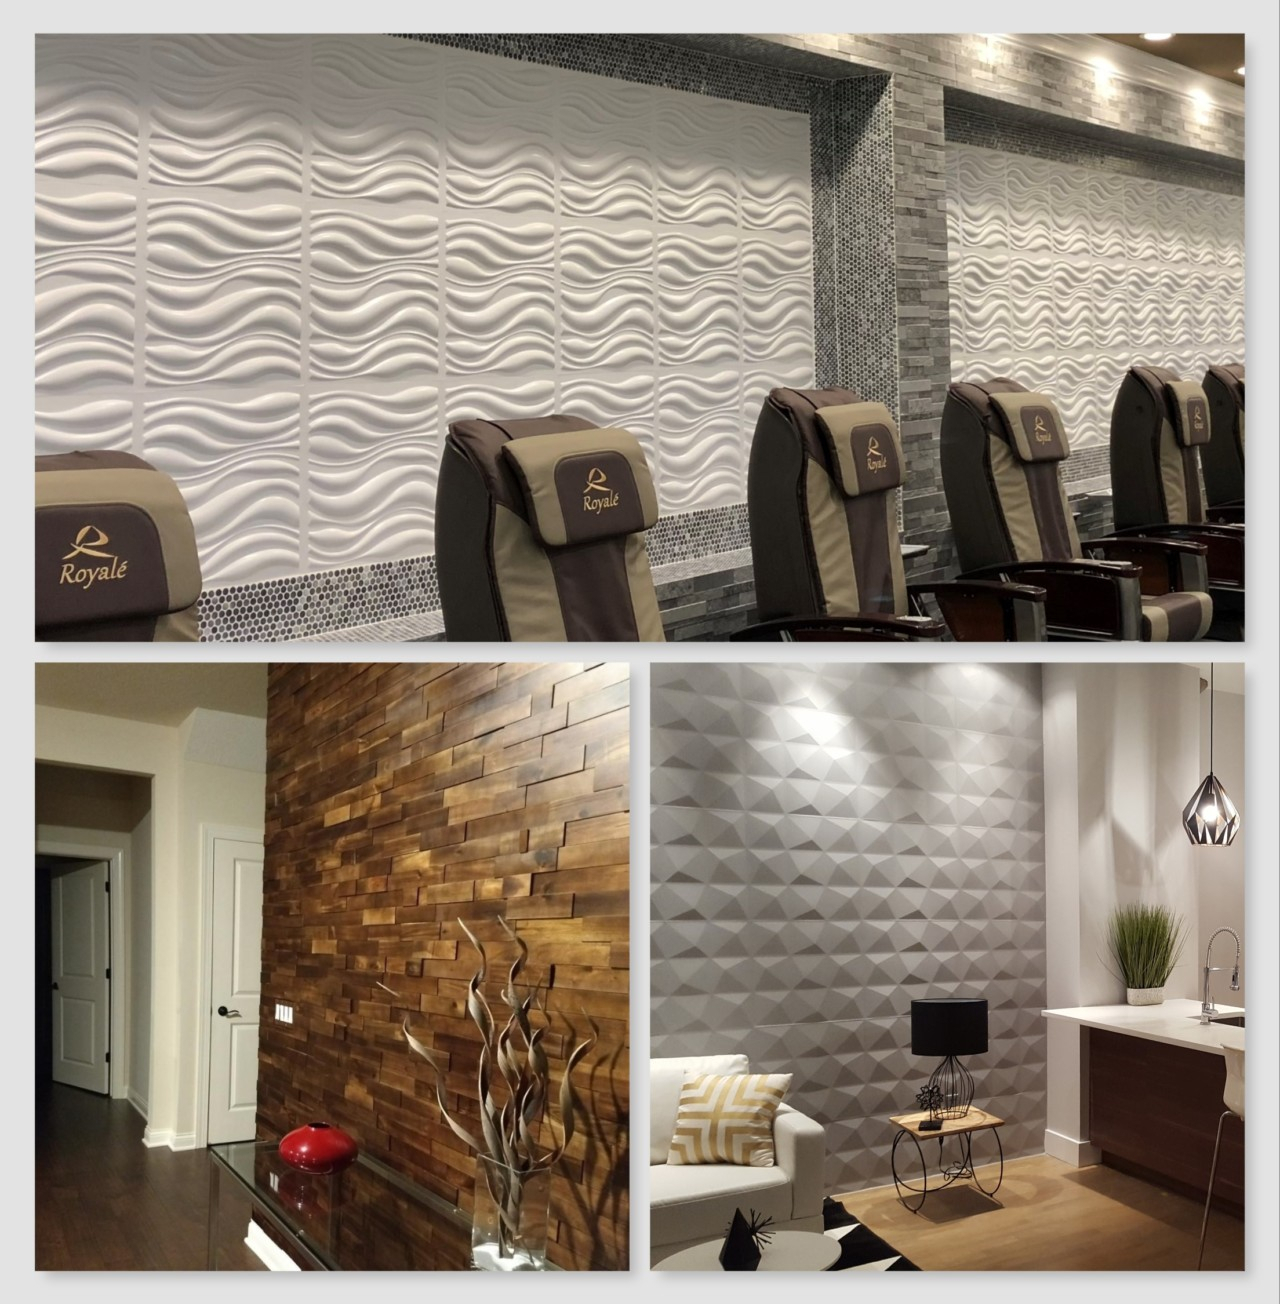 3d Wall Panels – Decorative Wall Paneling – Wood Wall Panels Within Raised Star Wall Decor (View 11 of 30)